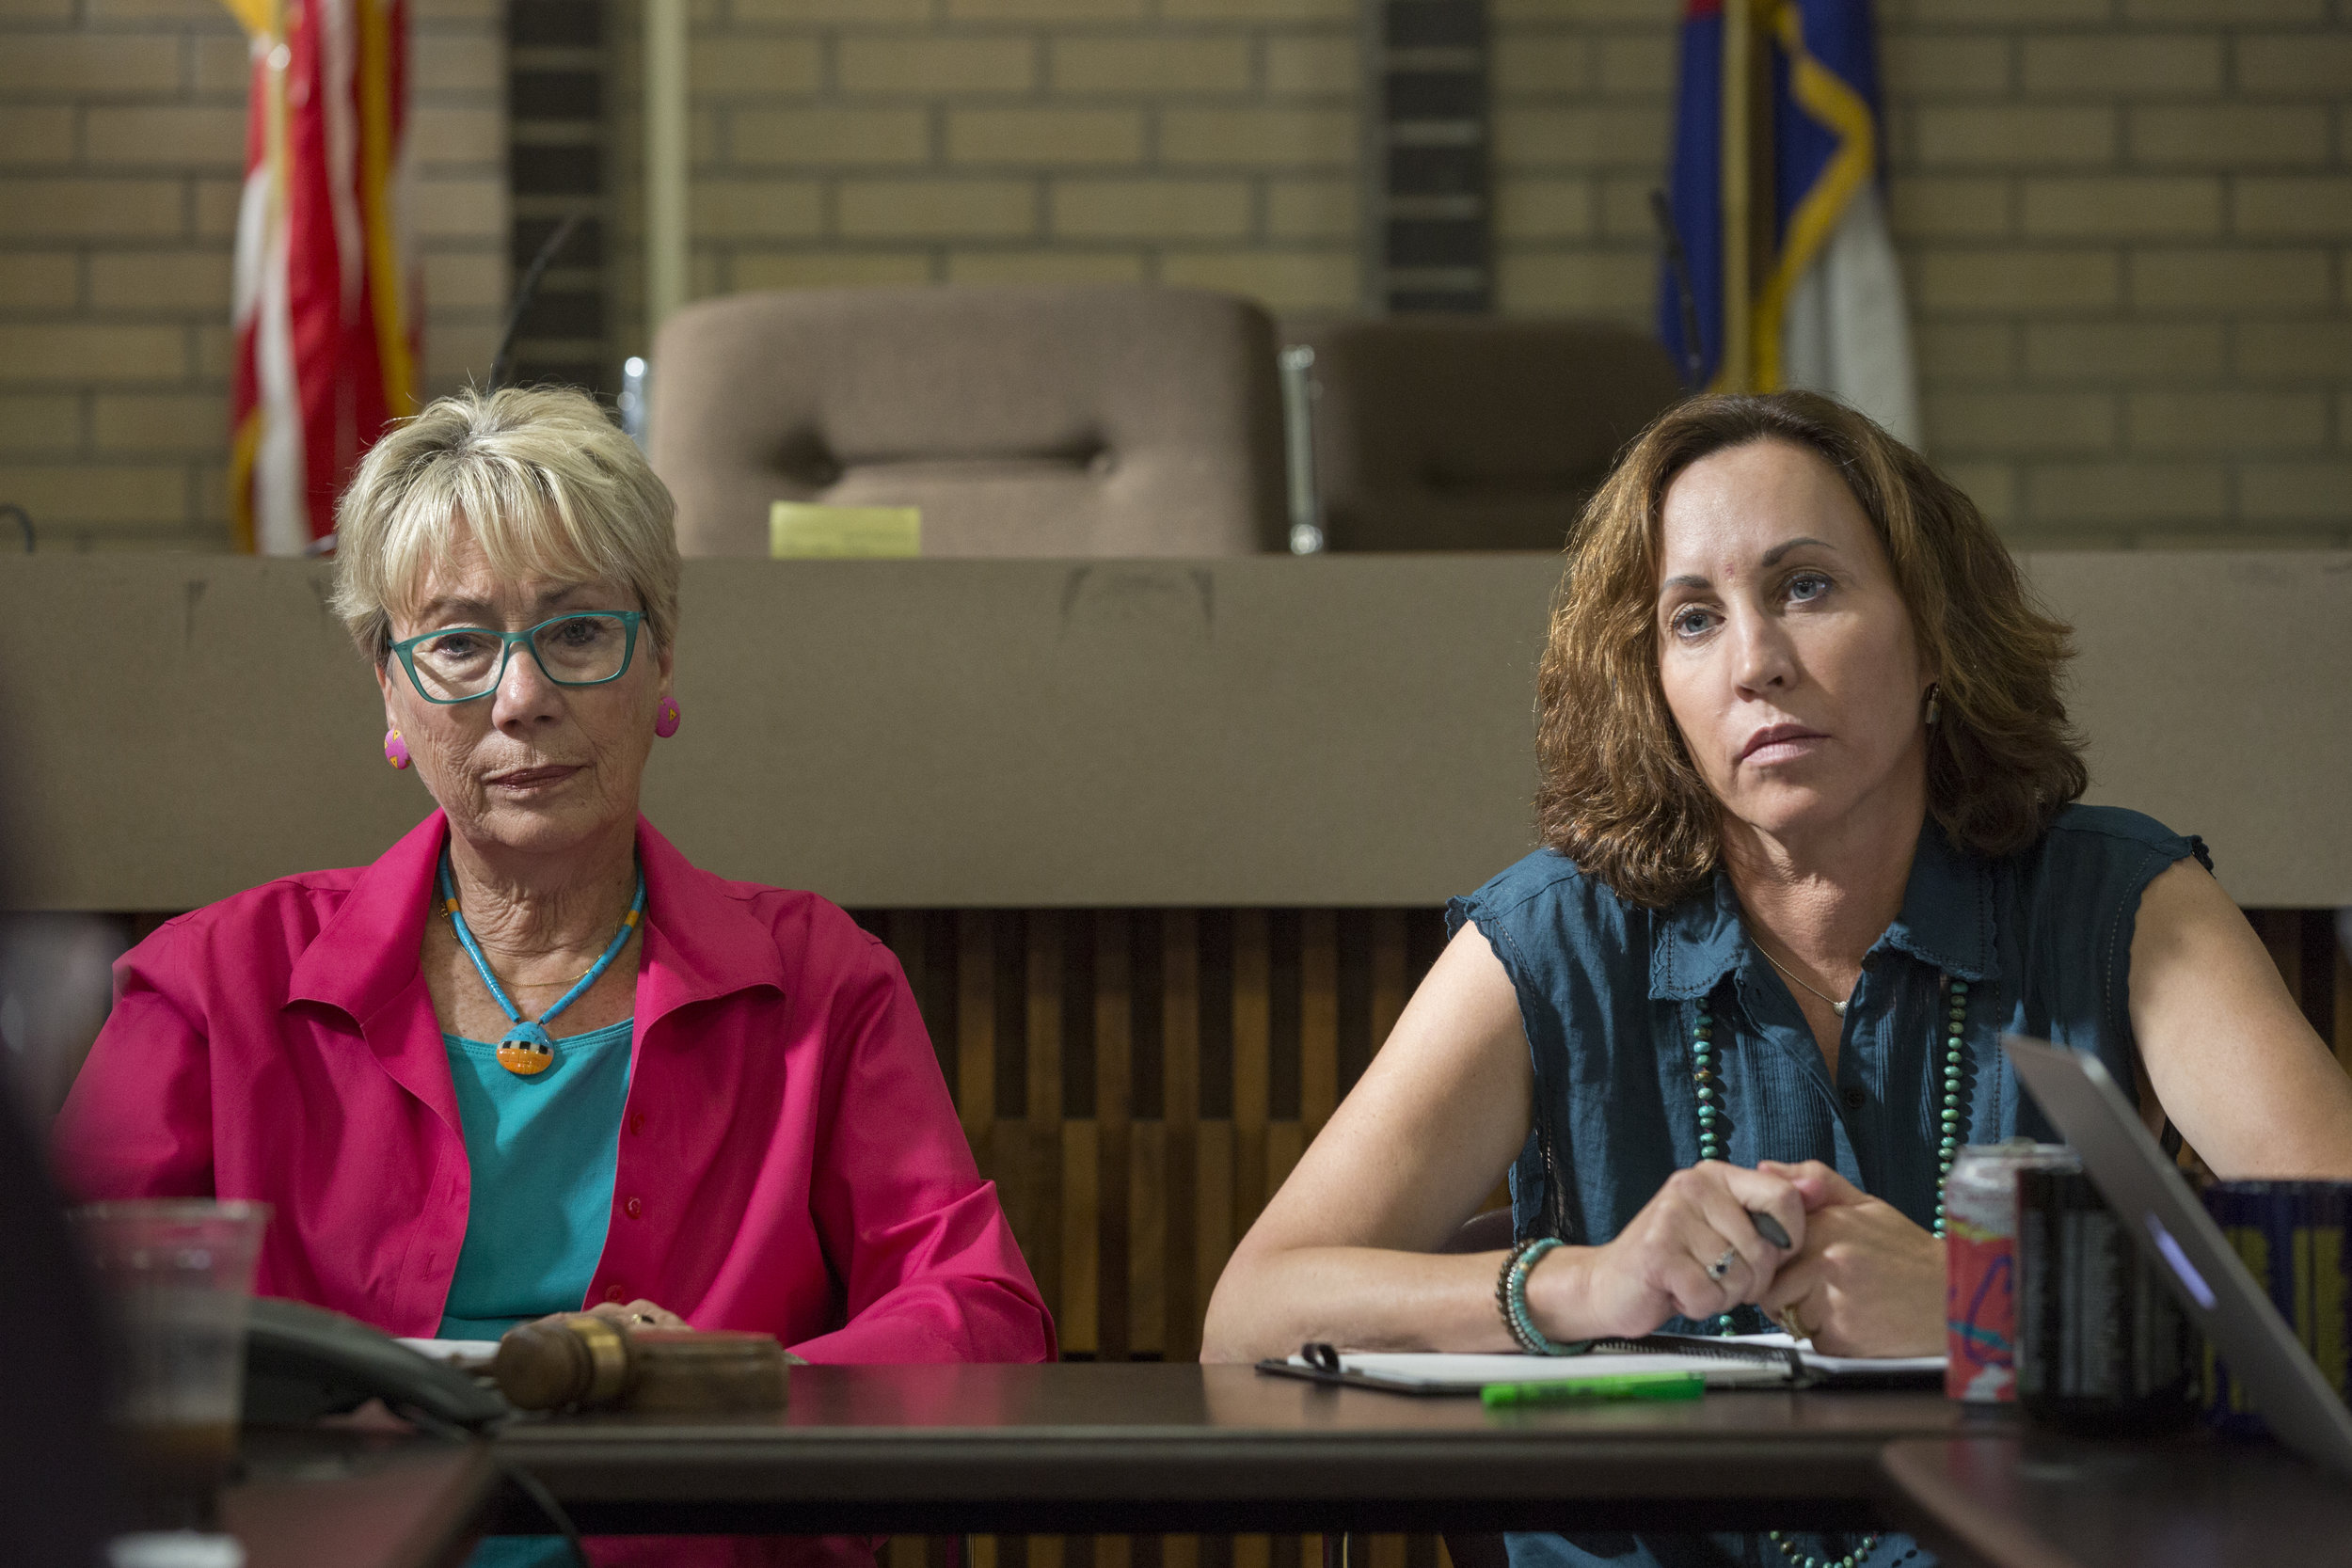 Durango Mayor Sweetie Marbury, left, and Mayor Pro Tem Melissa Youssef discuss the fate of the homeless population of Durango during a city council meeting on July 25, 2018. (Scott DW Smith, Special to The Colorado Sun)